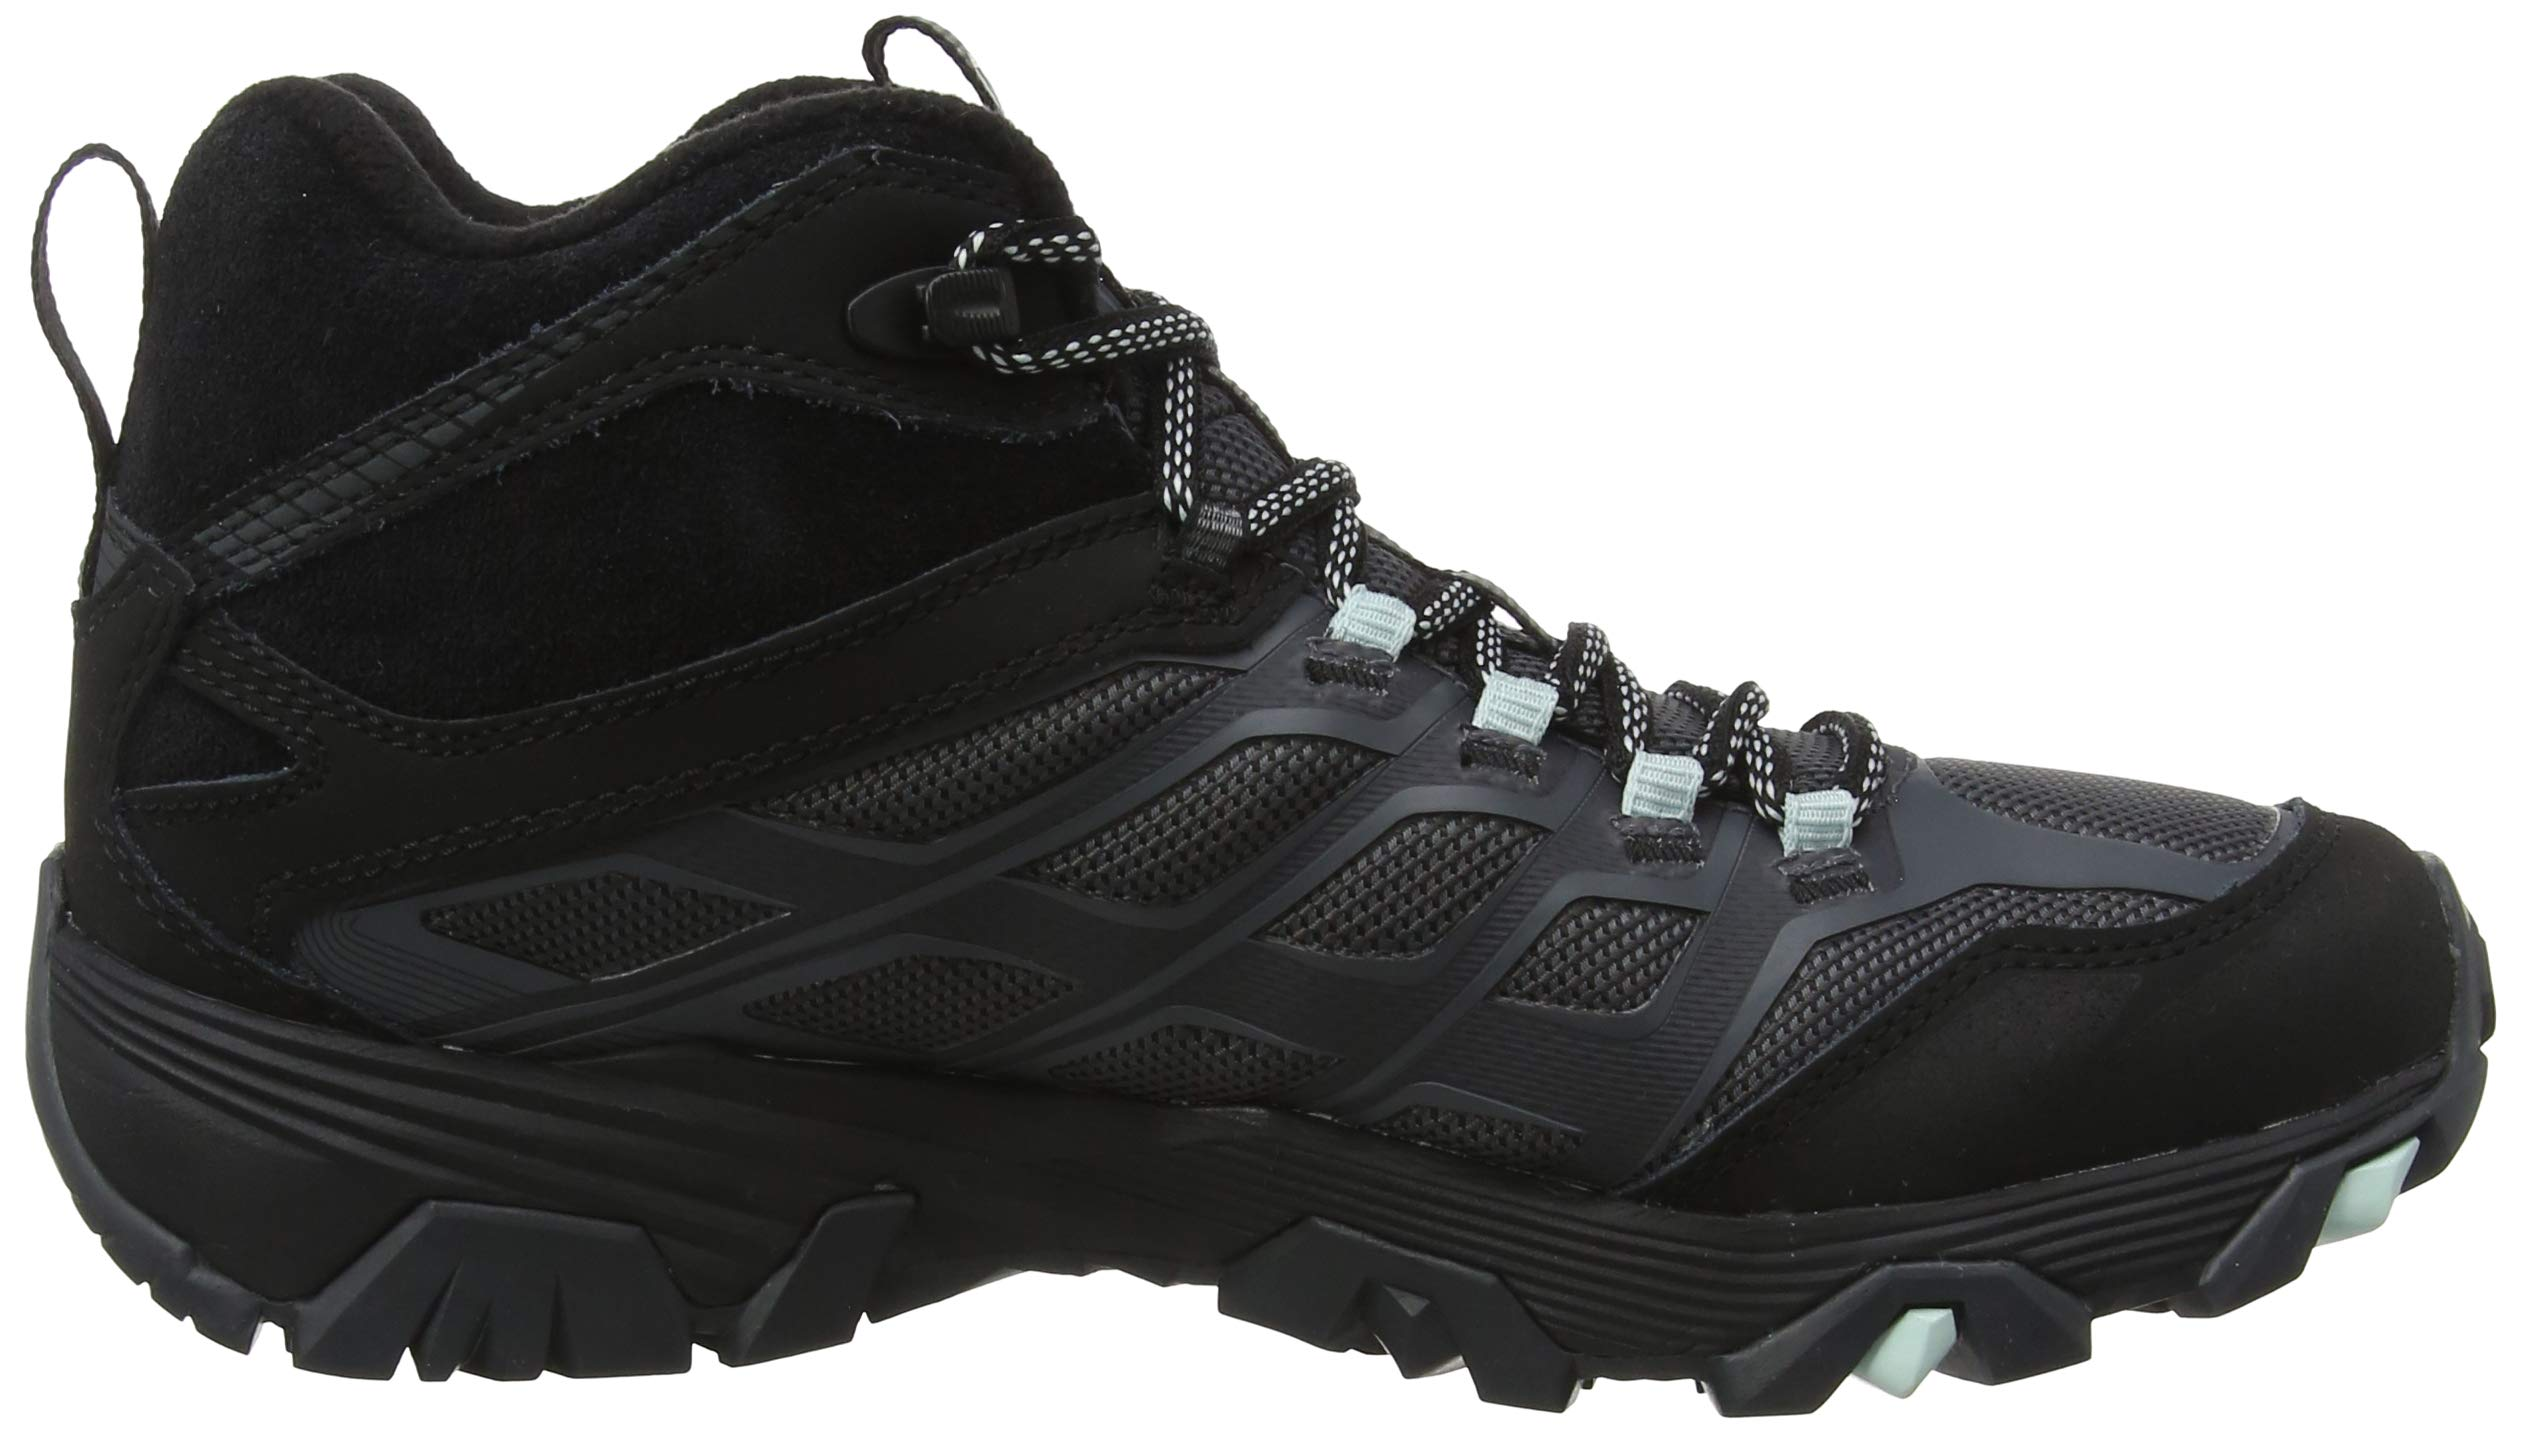 71nP3kCTMVL - Merrell Women's Moab FST Ice+ Thermo High Rise Hiking Boots